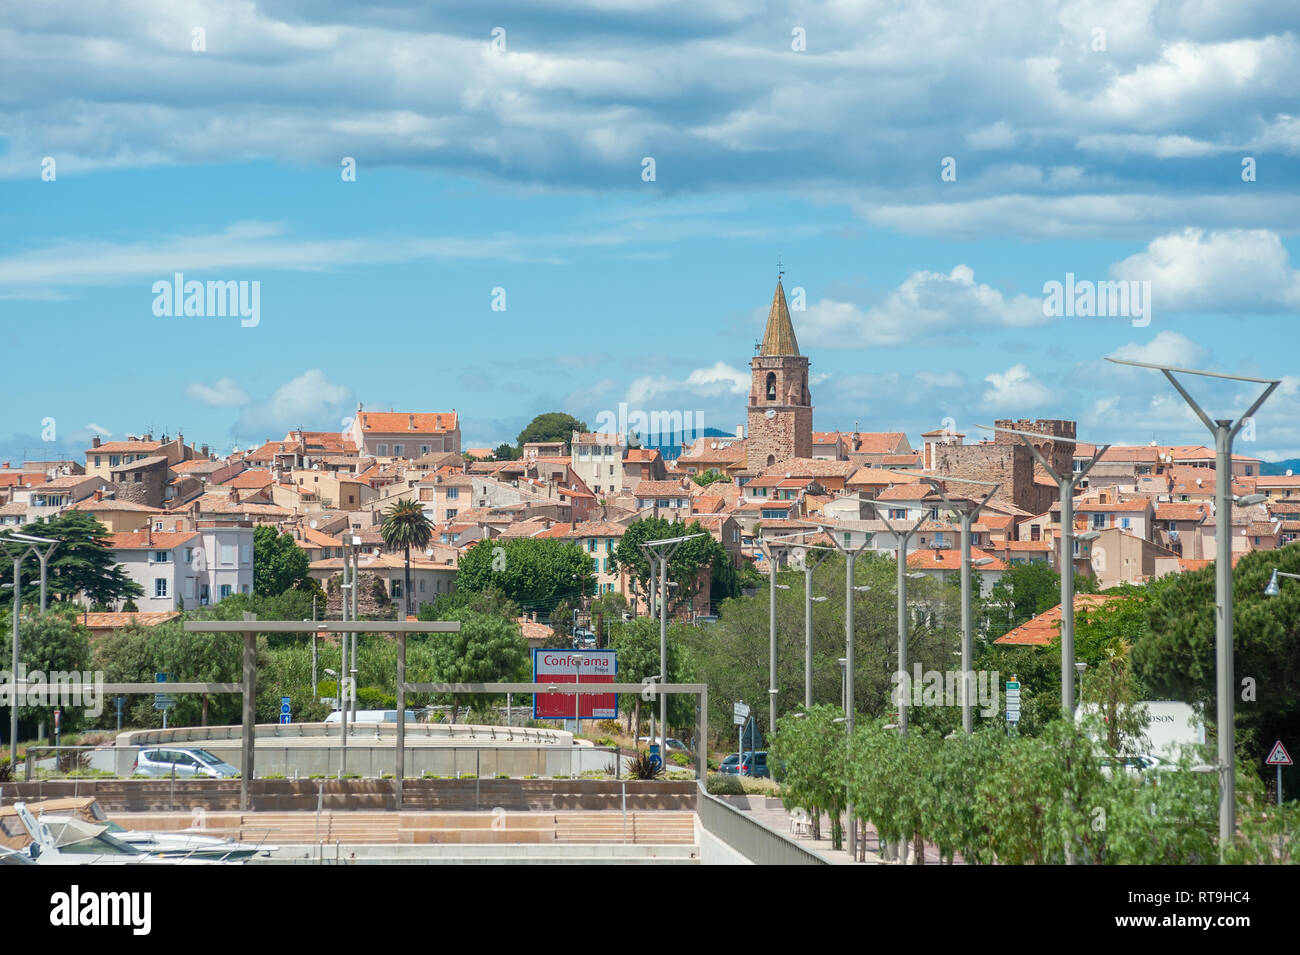 View from Port Frejus to the old town of Frejus, Var, Provence-Alpes-Cote d`Azur, France, Europe - Stock Image